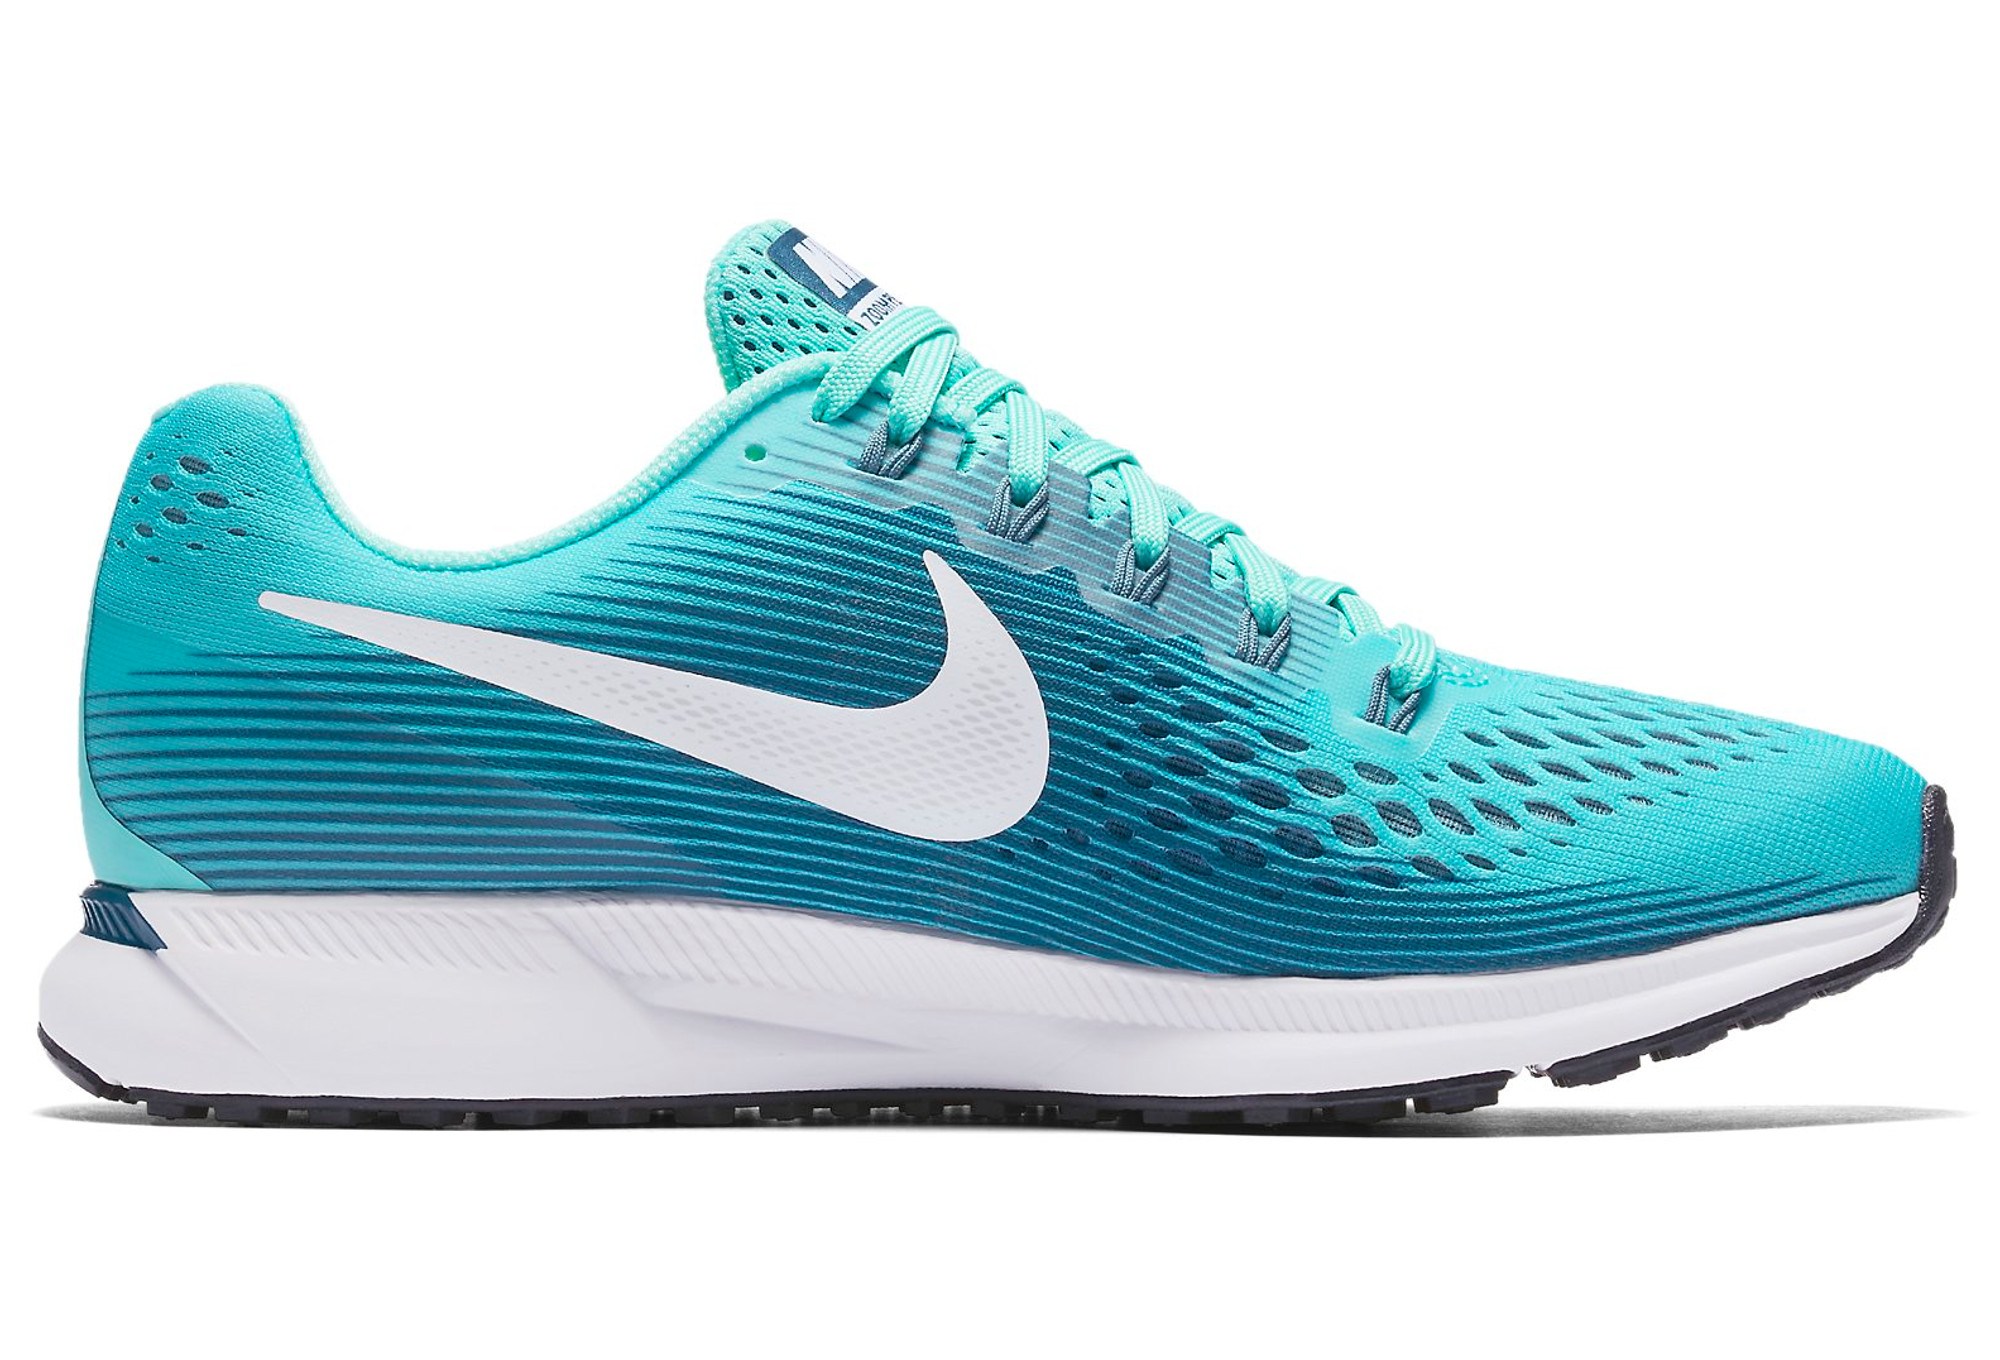 nike air zoom pegasus 34 shoes blue women. Black Bedroom Furniture Sets. Home Design Ideas